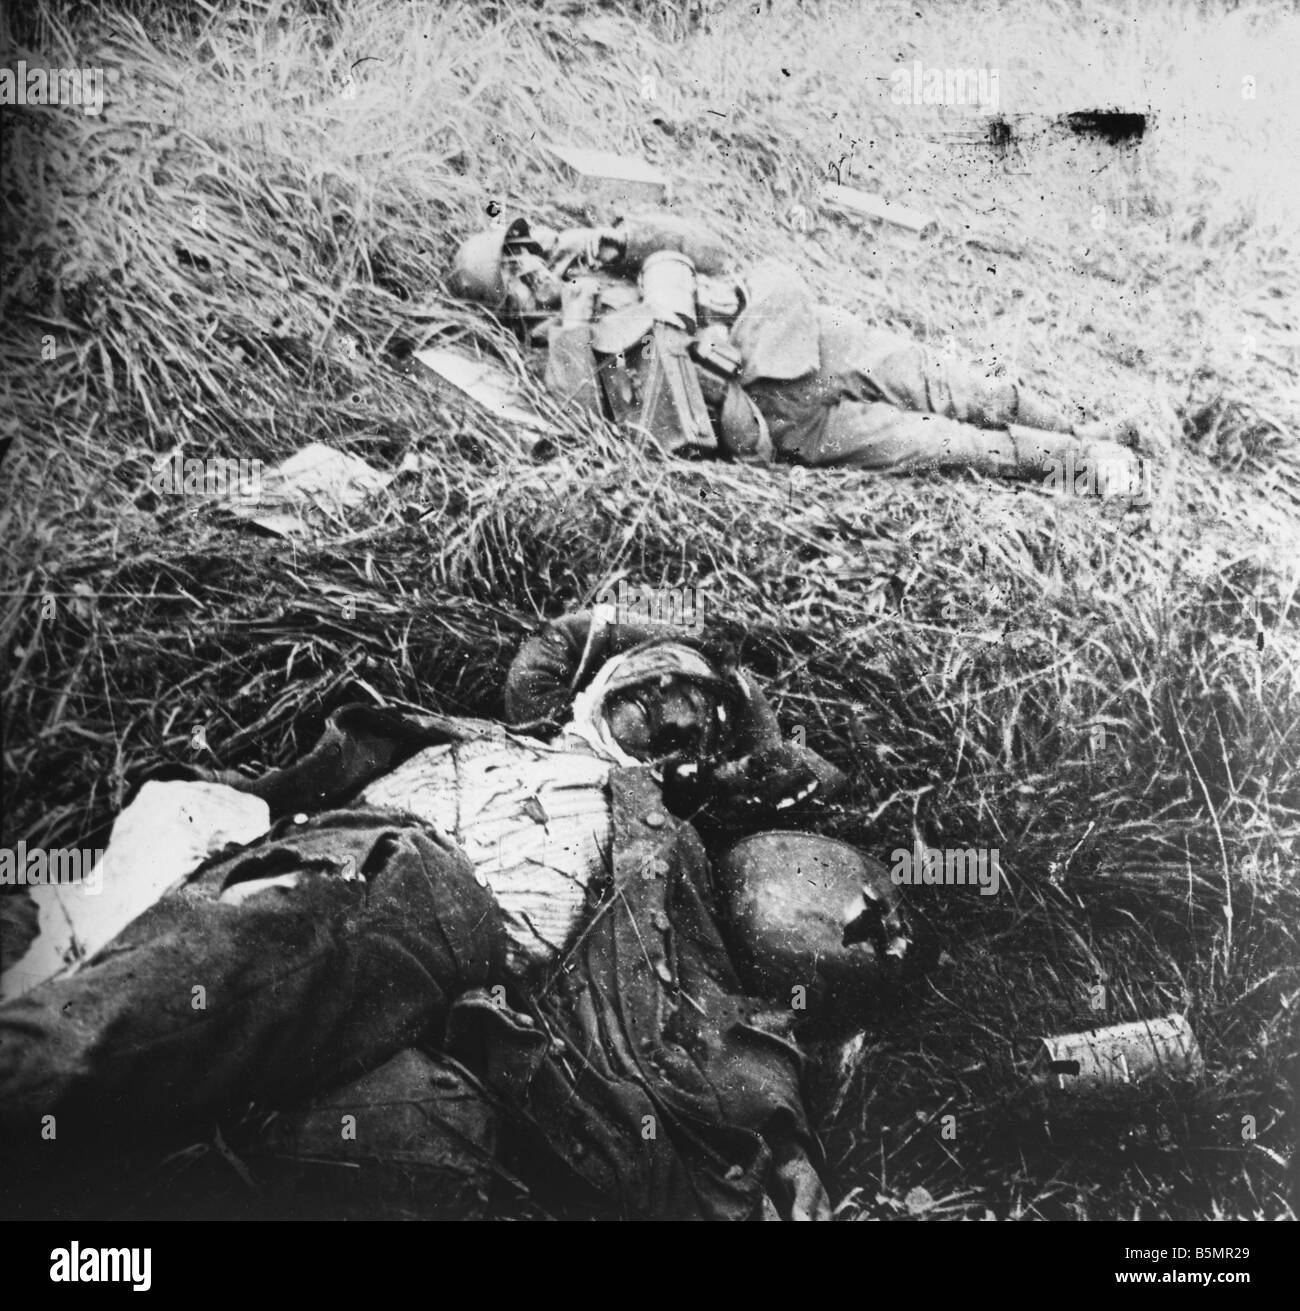 9 1917 4 16 A1 Fallen soldiers at Craonne 1917 Photo First World War 1914 18 Western Front double battle at the - Stock Image